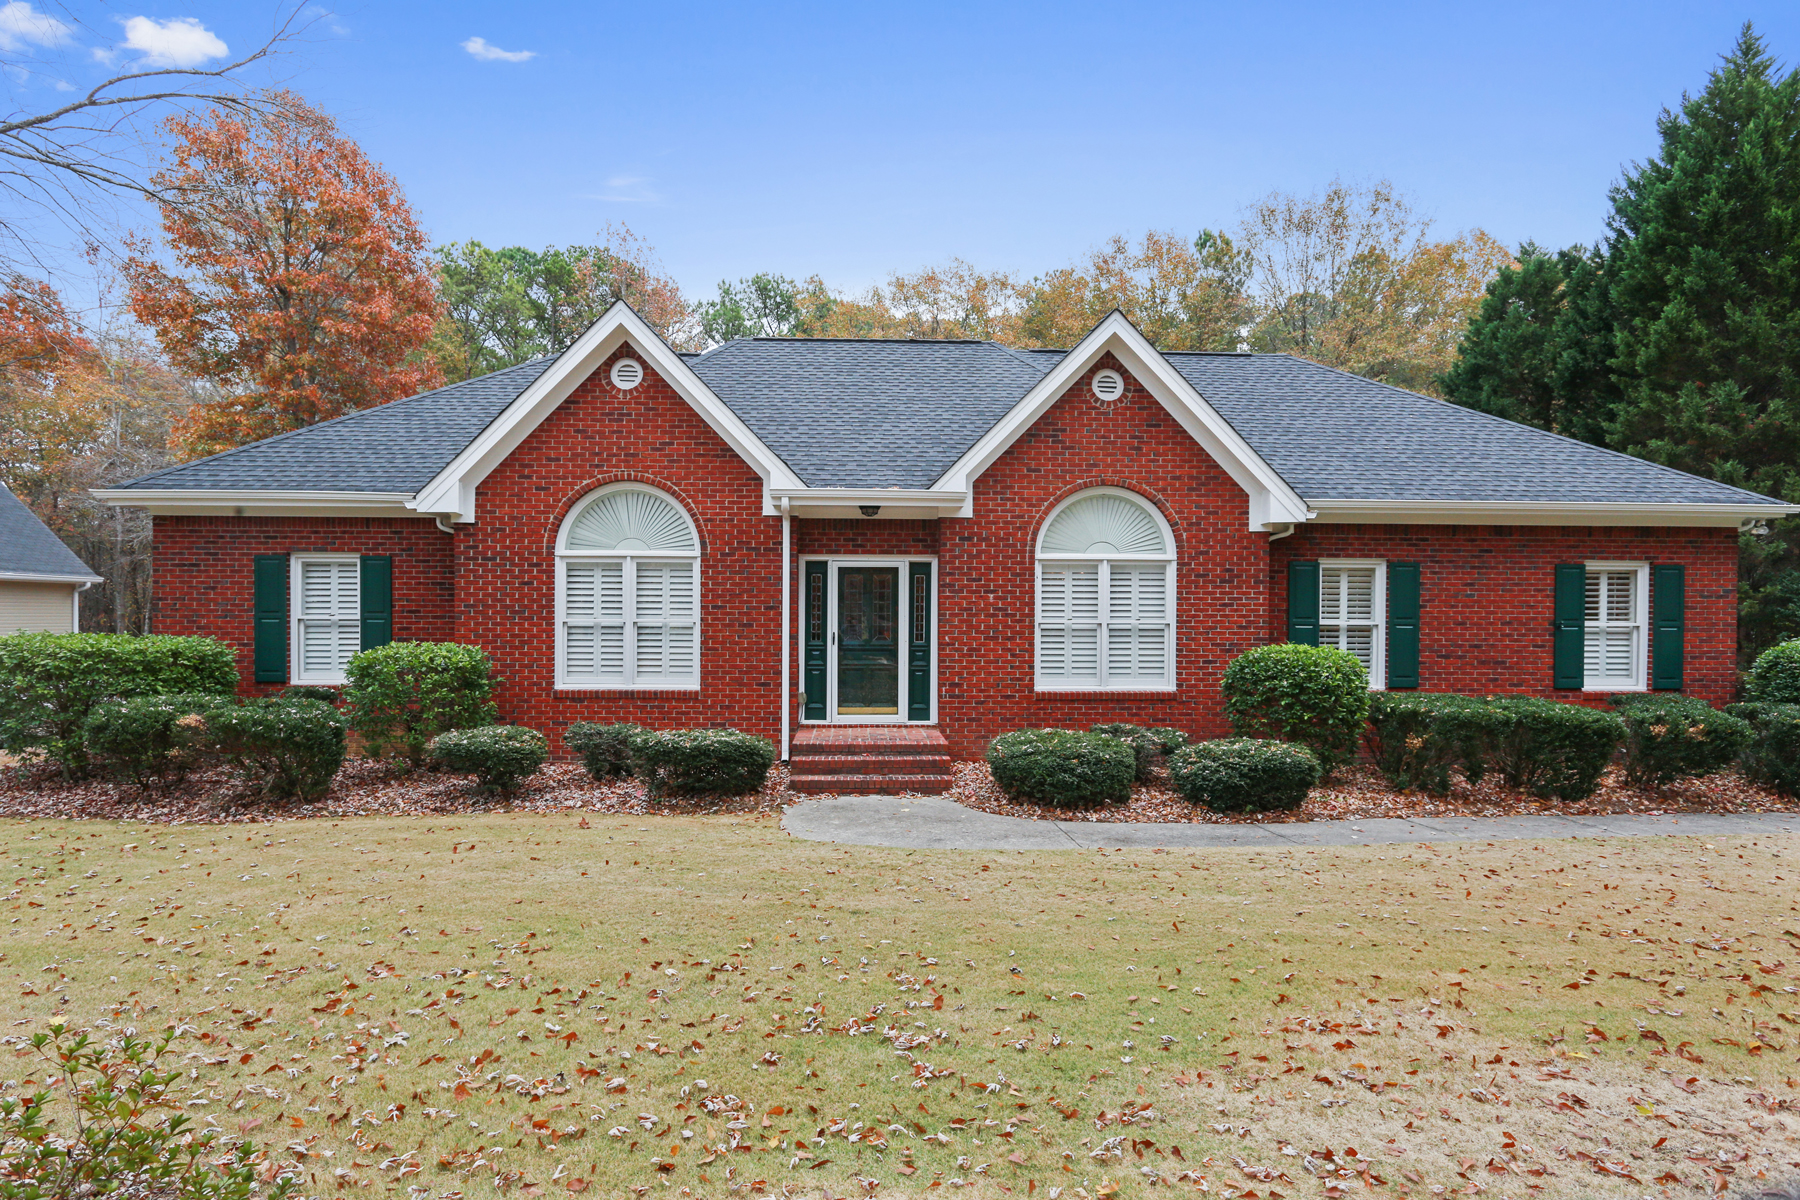 Single Family Home for Sale at Meticulously Maintained Brick Ranch 225 Lakewood Drive Carrollton, Georgia, 30117 United States